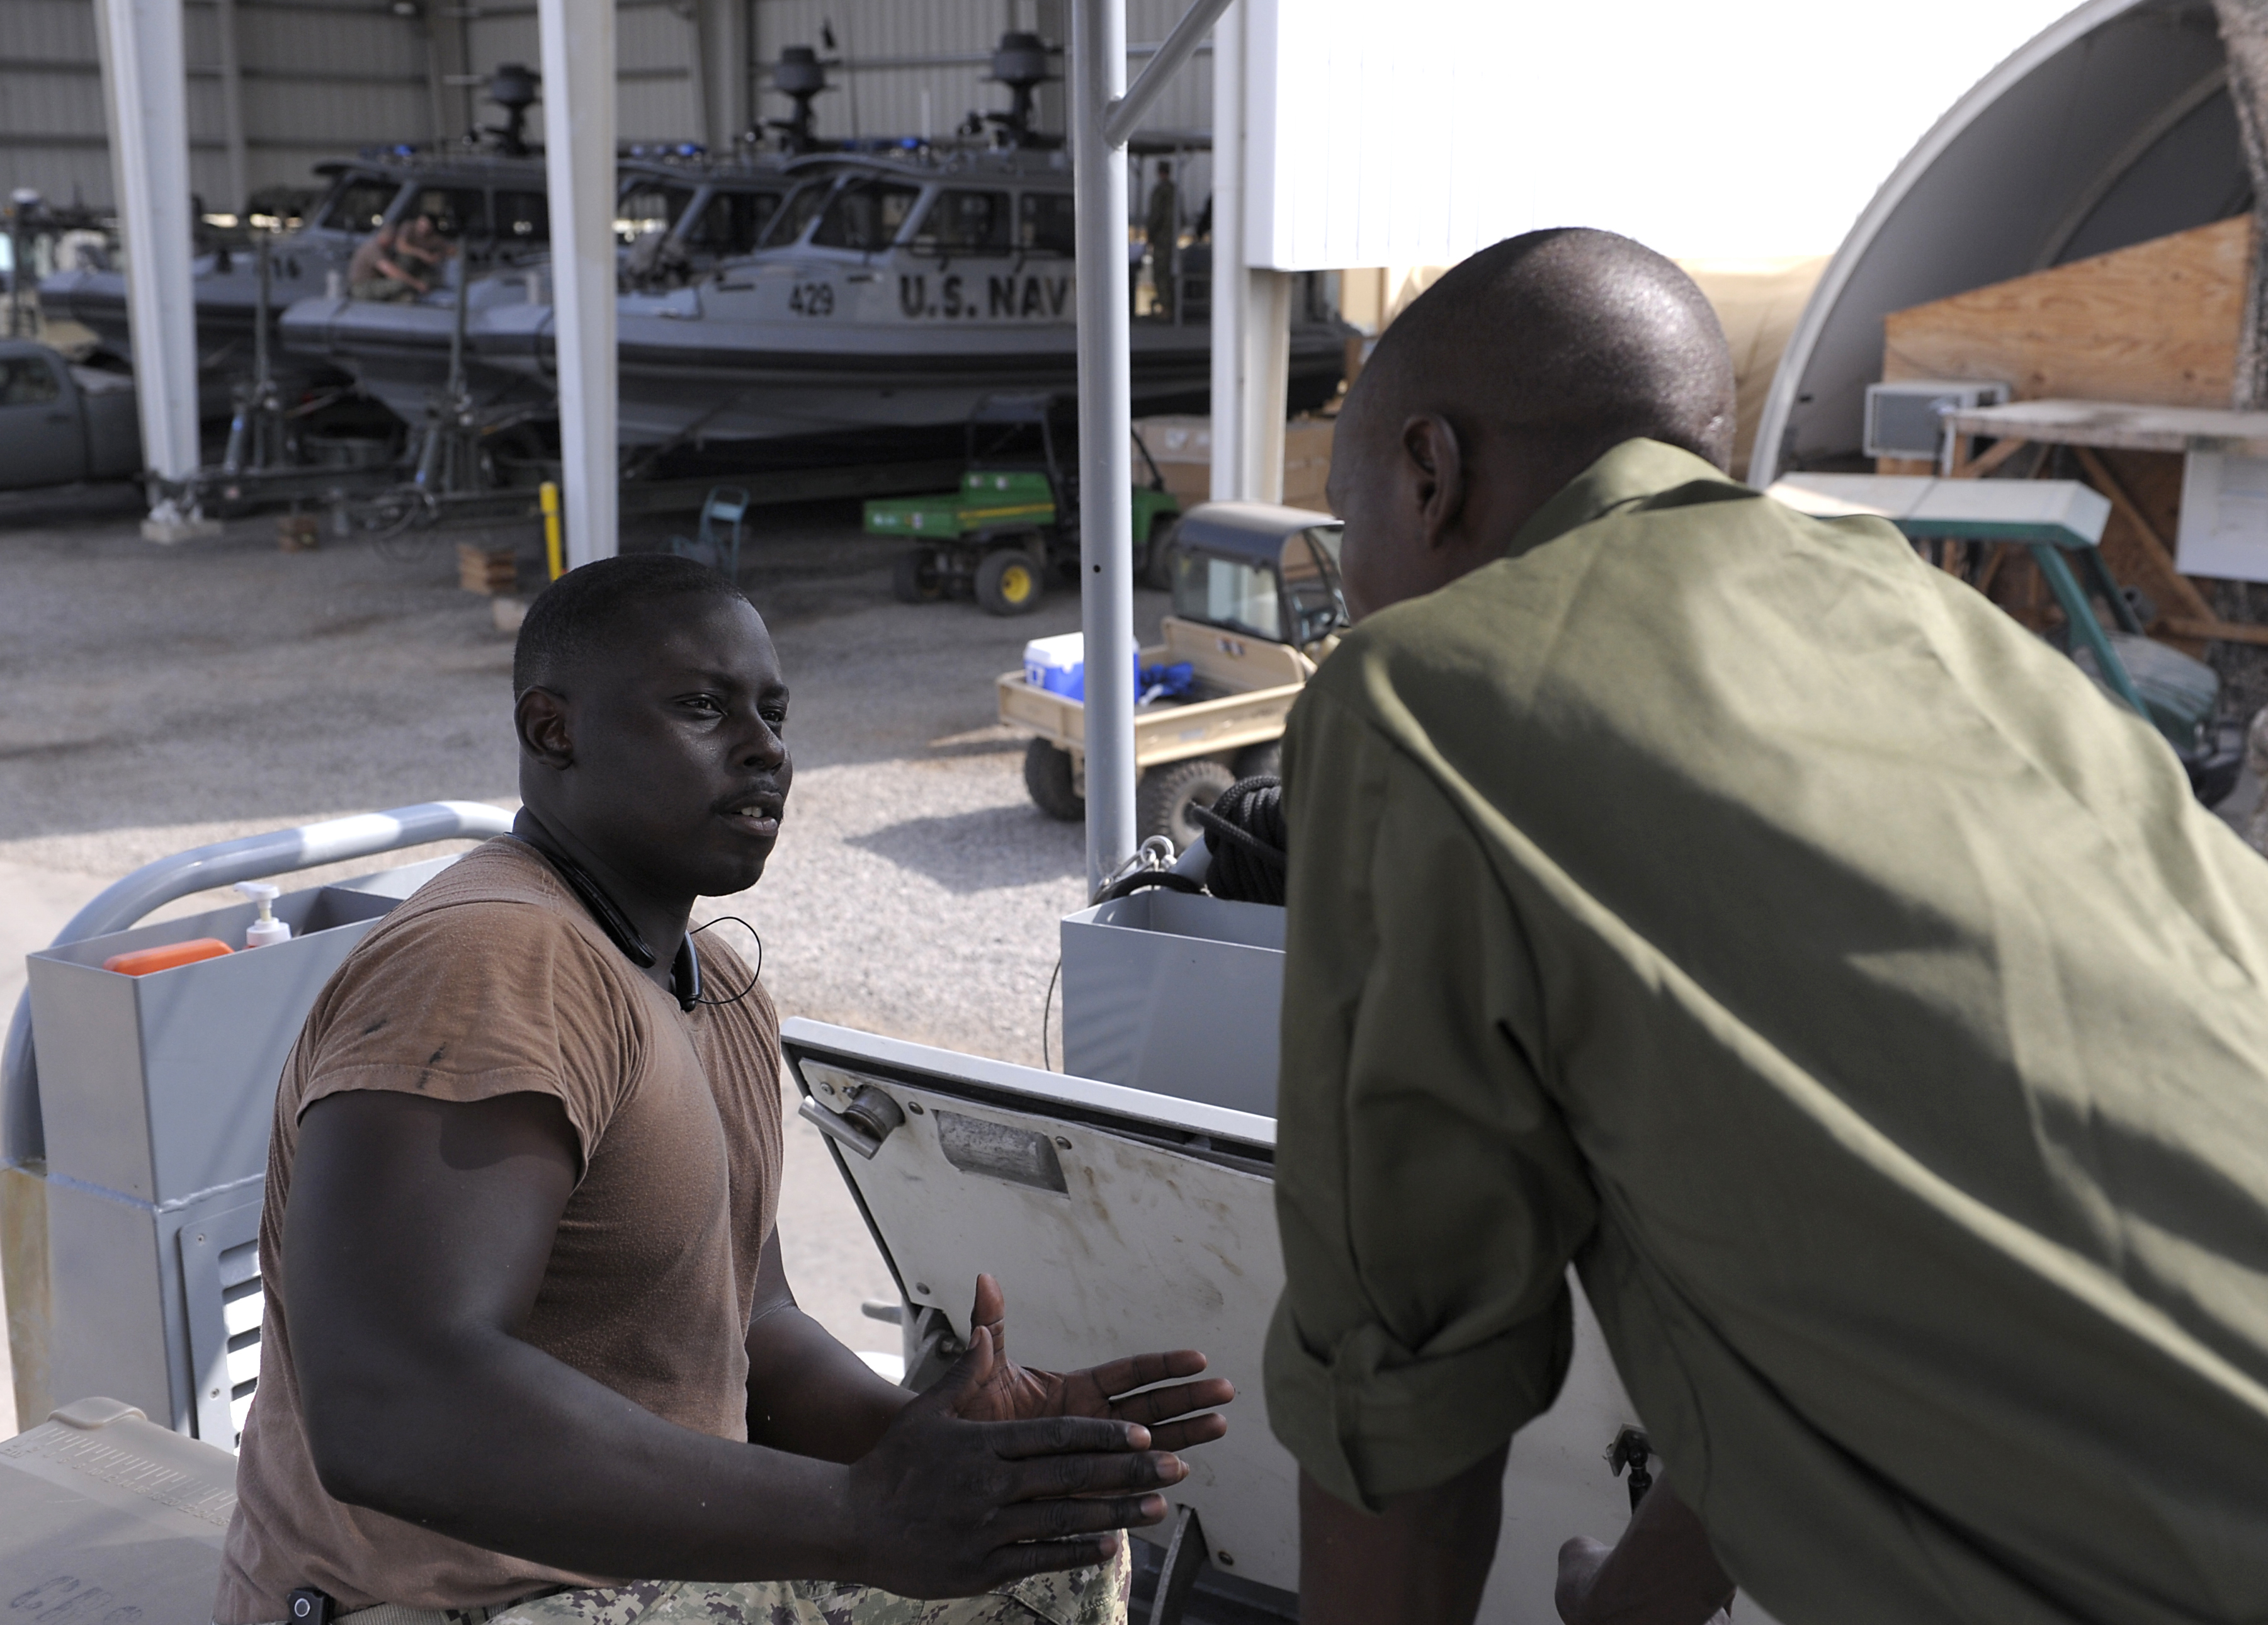 A member of the Kenya Defence Forces Navy and Boatswain Mate 3rd Class Jeremy White, Coastal Riverine Squadron 10, talk about the difficulties of working in small engine compartments during a maintenance and operations seminar at Camp Lemonnier, Djibouti, Jan. 18, 2016. The two-day seminar provided both navies an opportunity to compare maintenance, operations and troubleshooting techniques. (U.S. Air Force photo by Tech. Sgt. Dan DeCook)